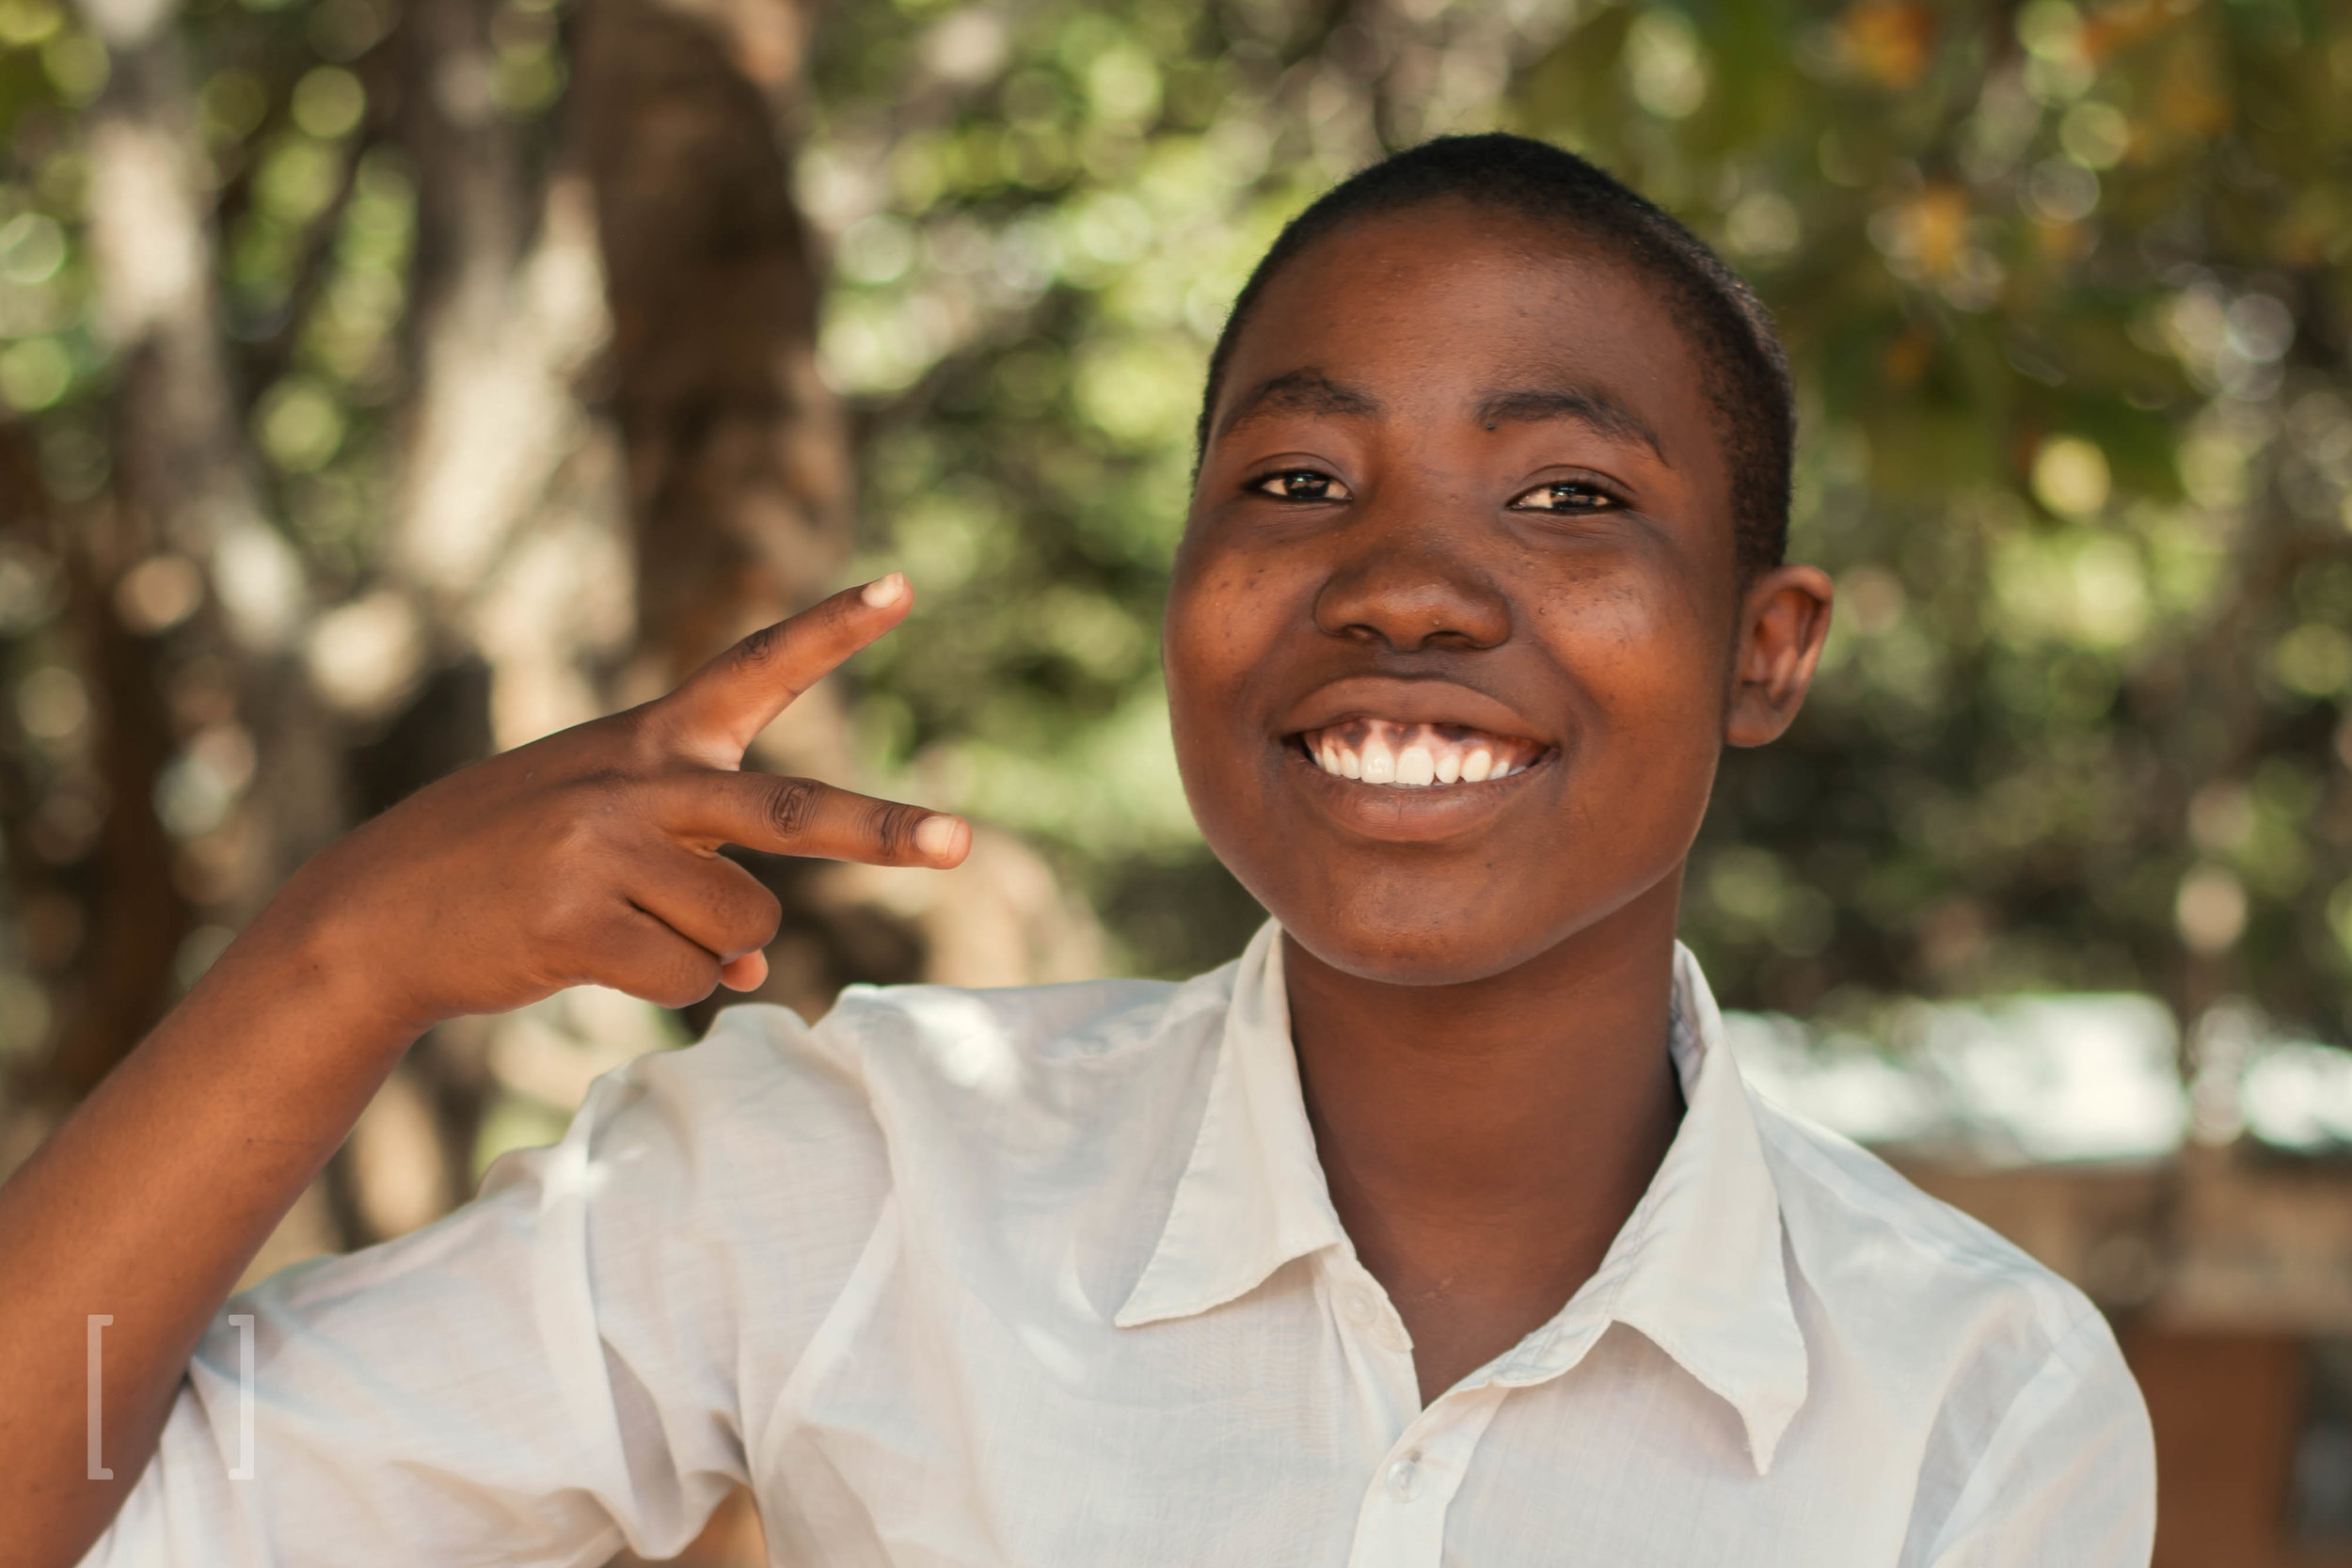 Faith - Orphaned at a young age, Faith came to Home of Hope for a chance at an education. Now she is top of her class and an aspiring nurse. Keep Faith on her high-achieving path!